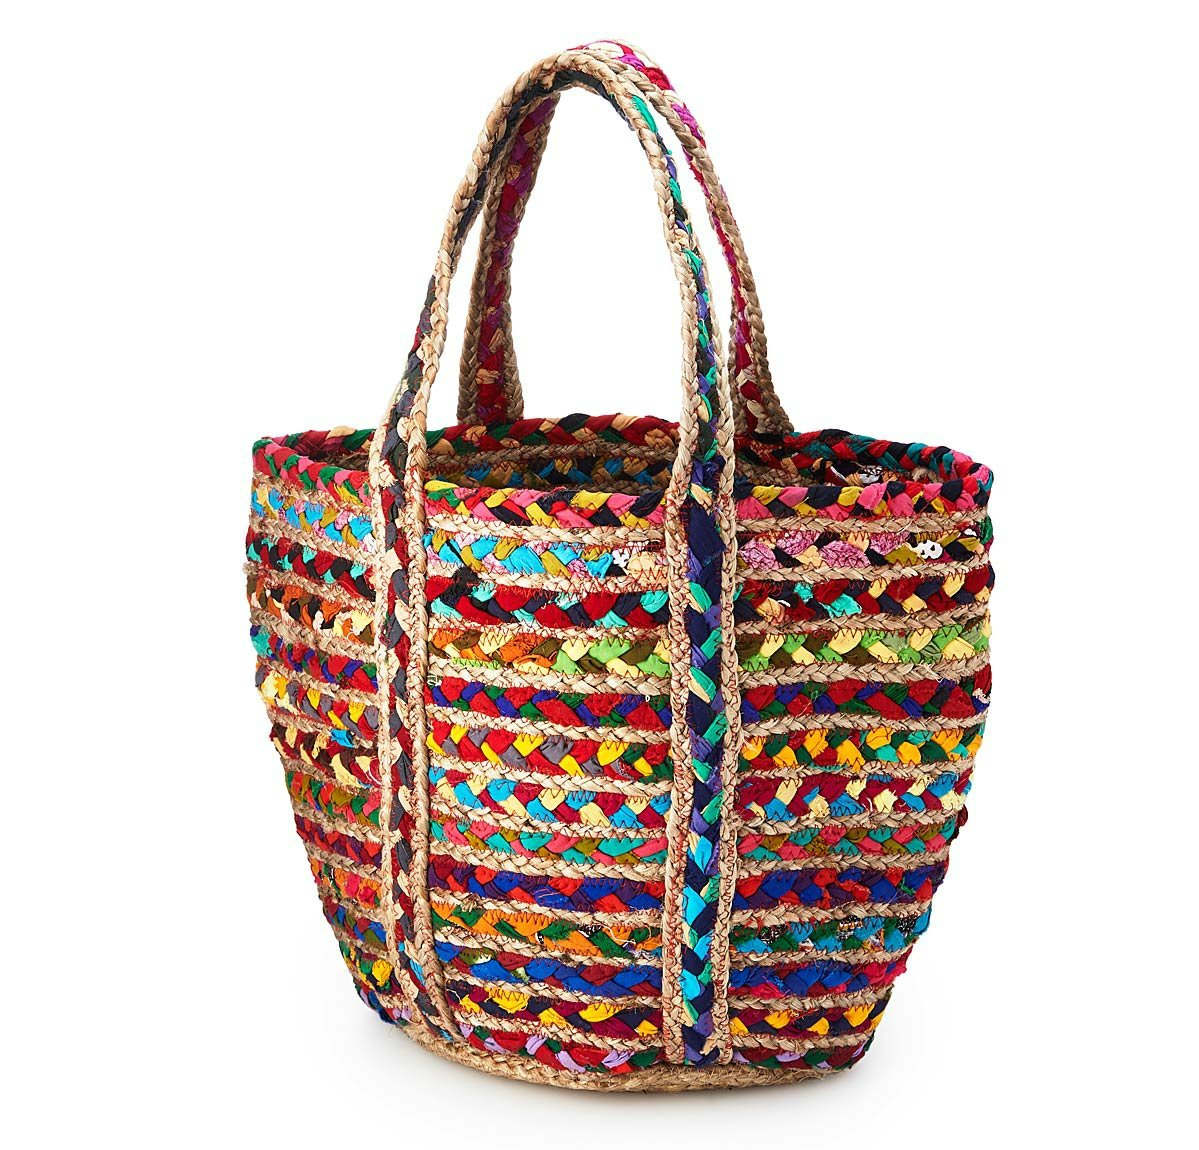 Upcycled Sari Tote Bag | UncommonGoods